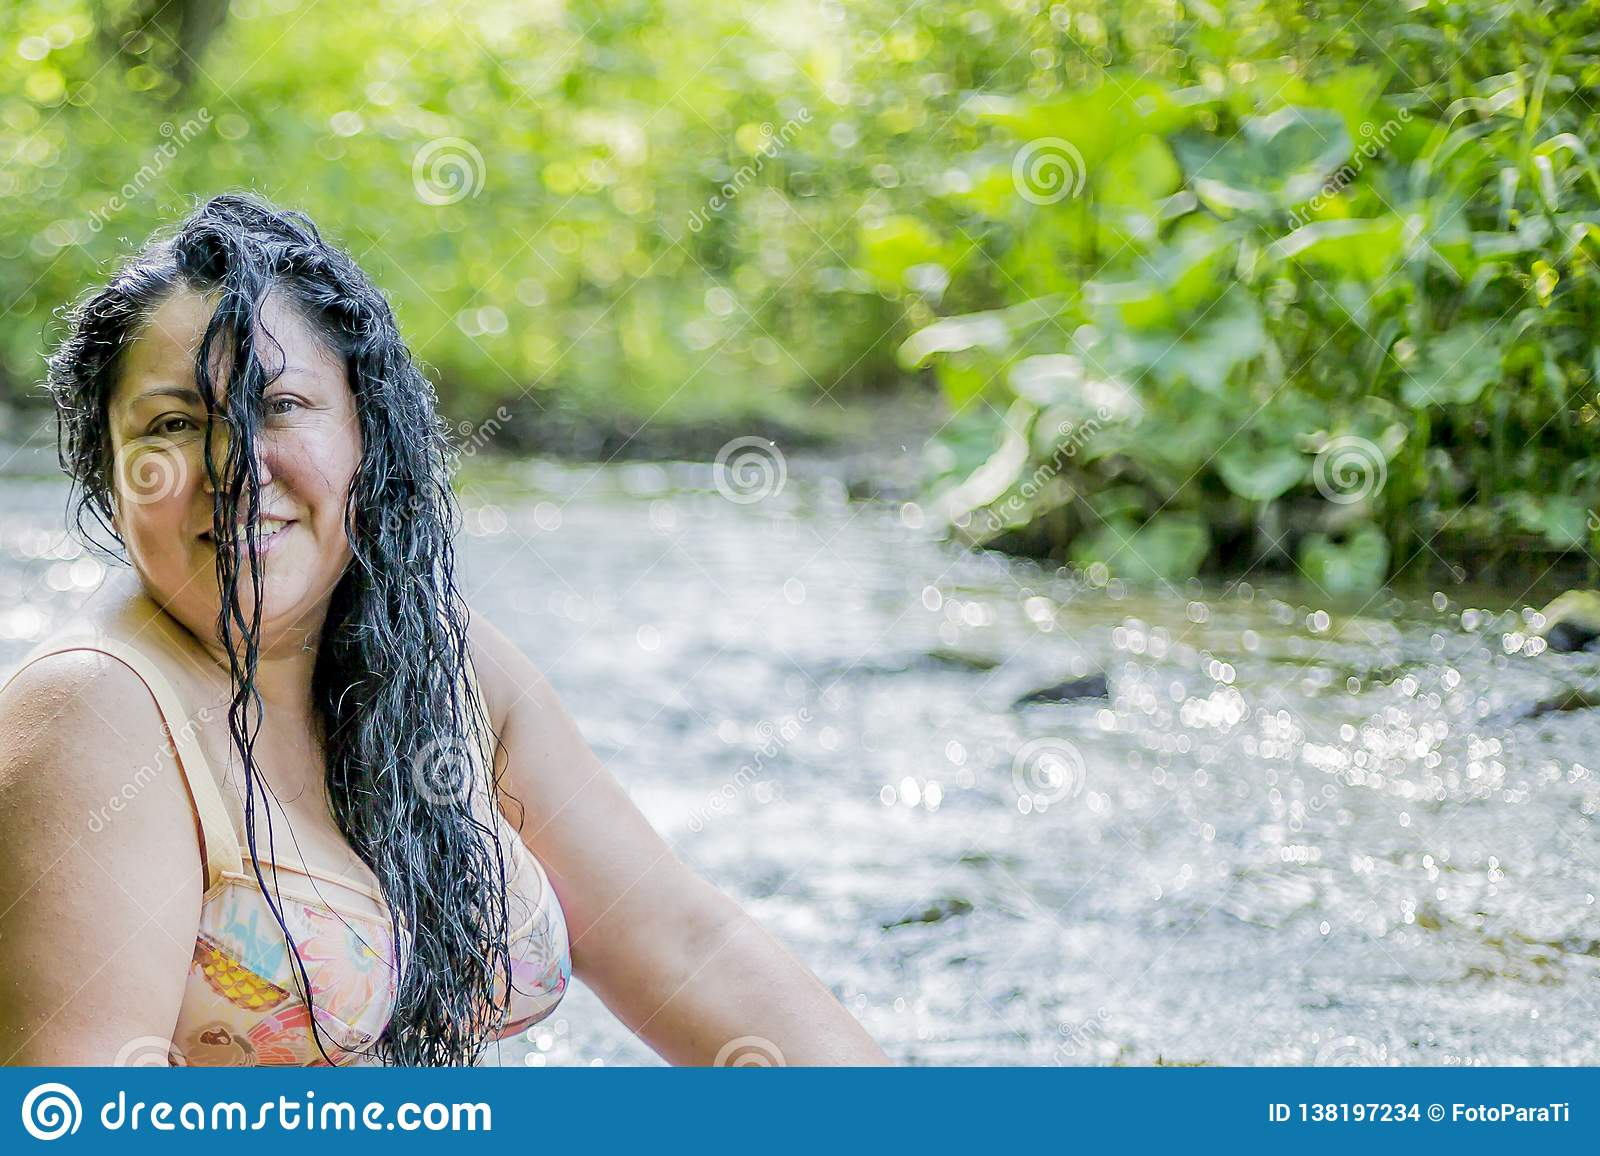 Image of a beautiful woman with long black hair on her face enjoying a wonderful and sunny summer